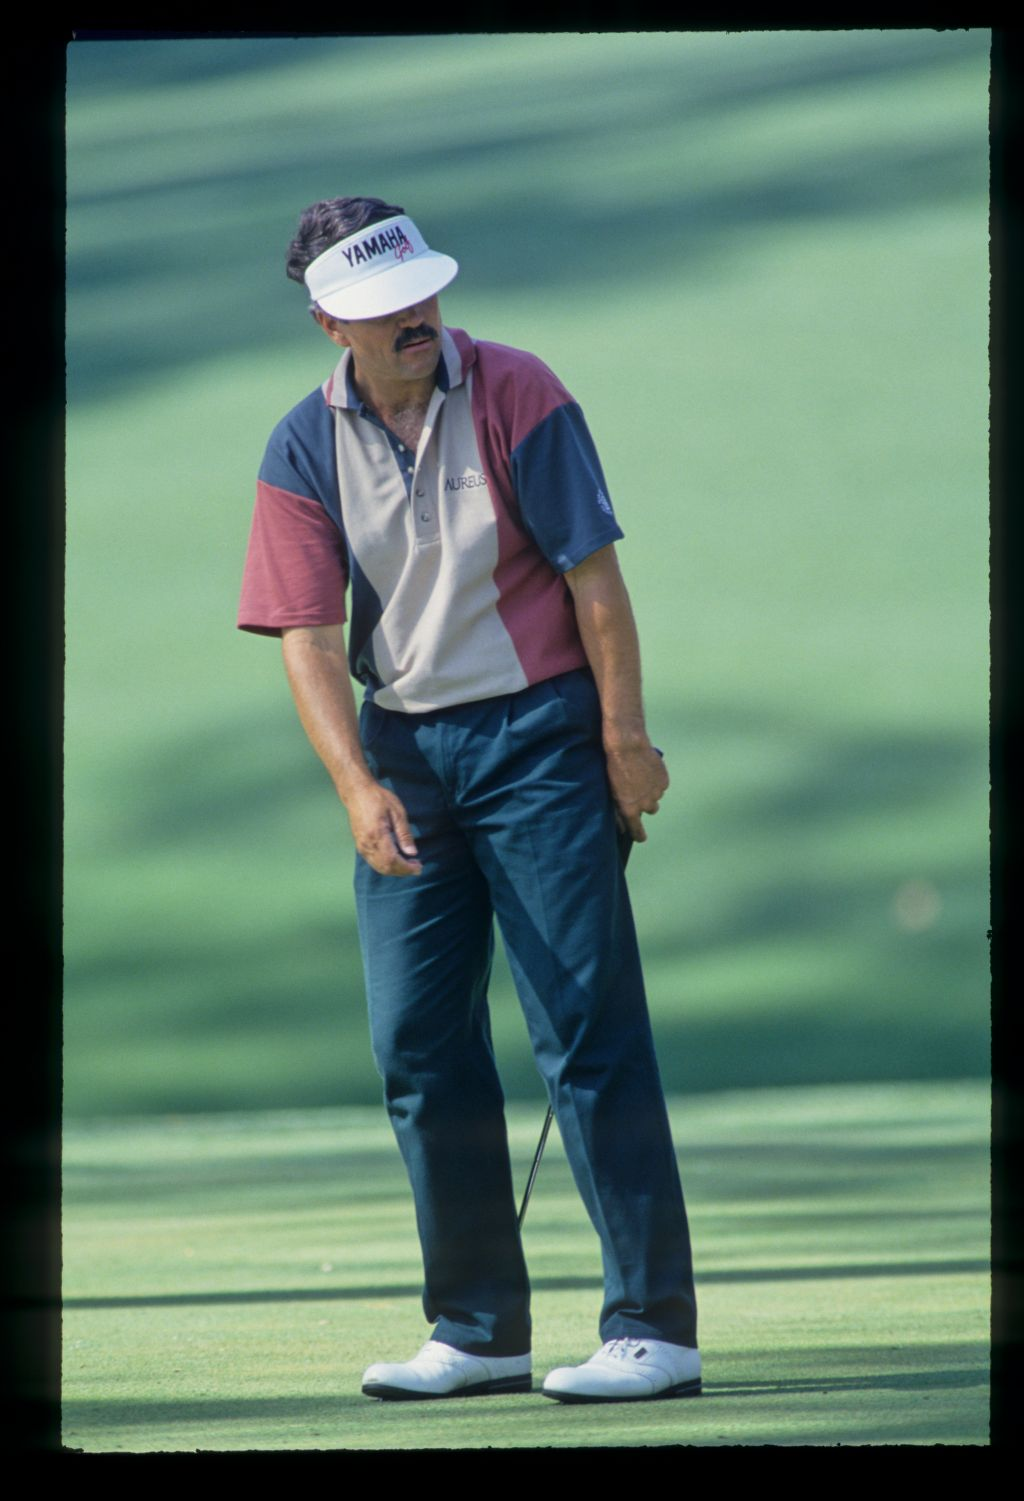 Scott Simpson reacting to a missed putt during the 1993 Masters